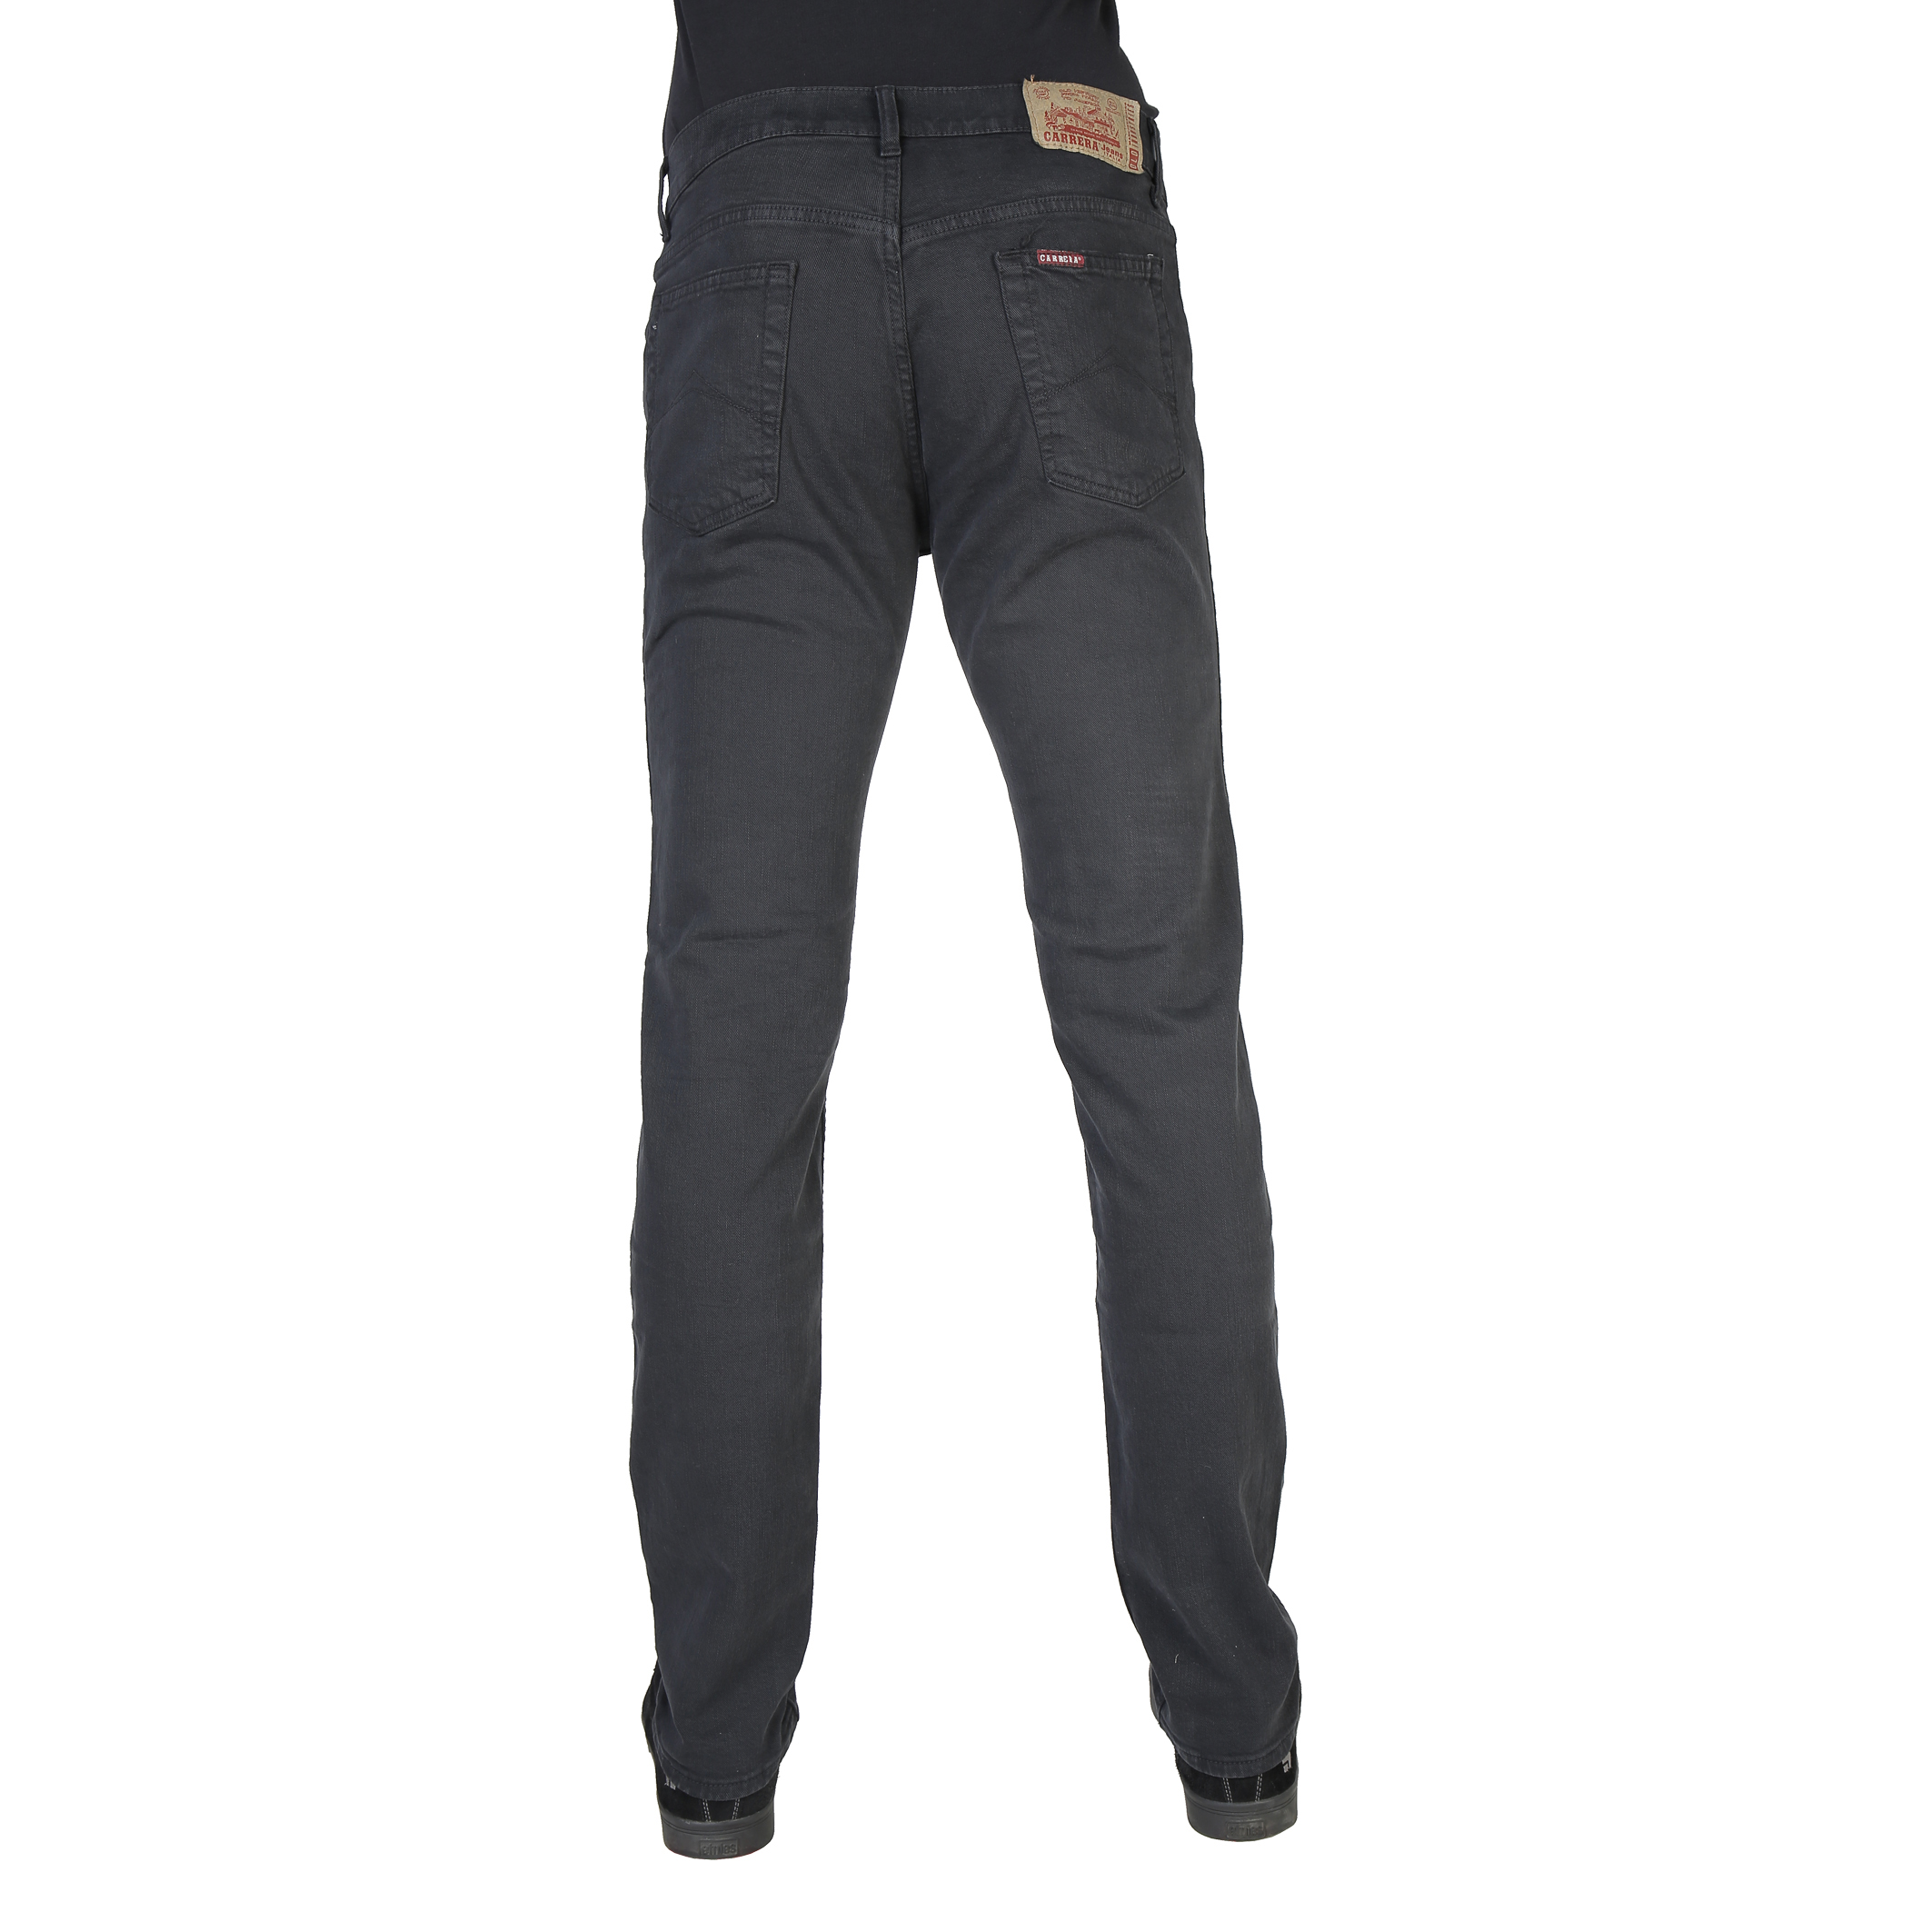 Jeans  Carrera Jeans 000700_9302A black